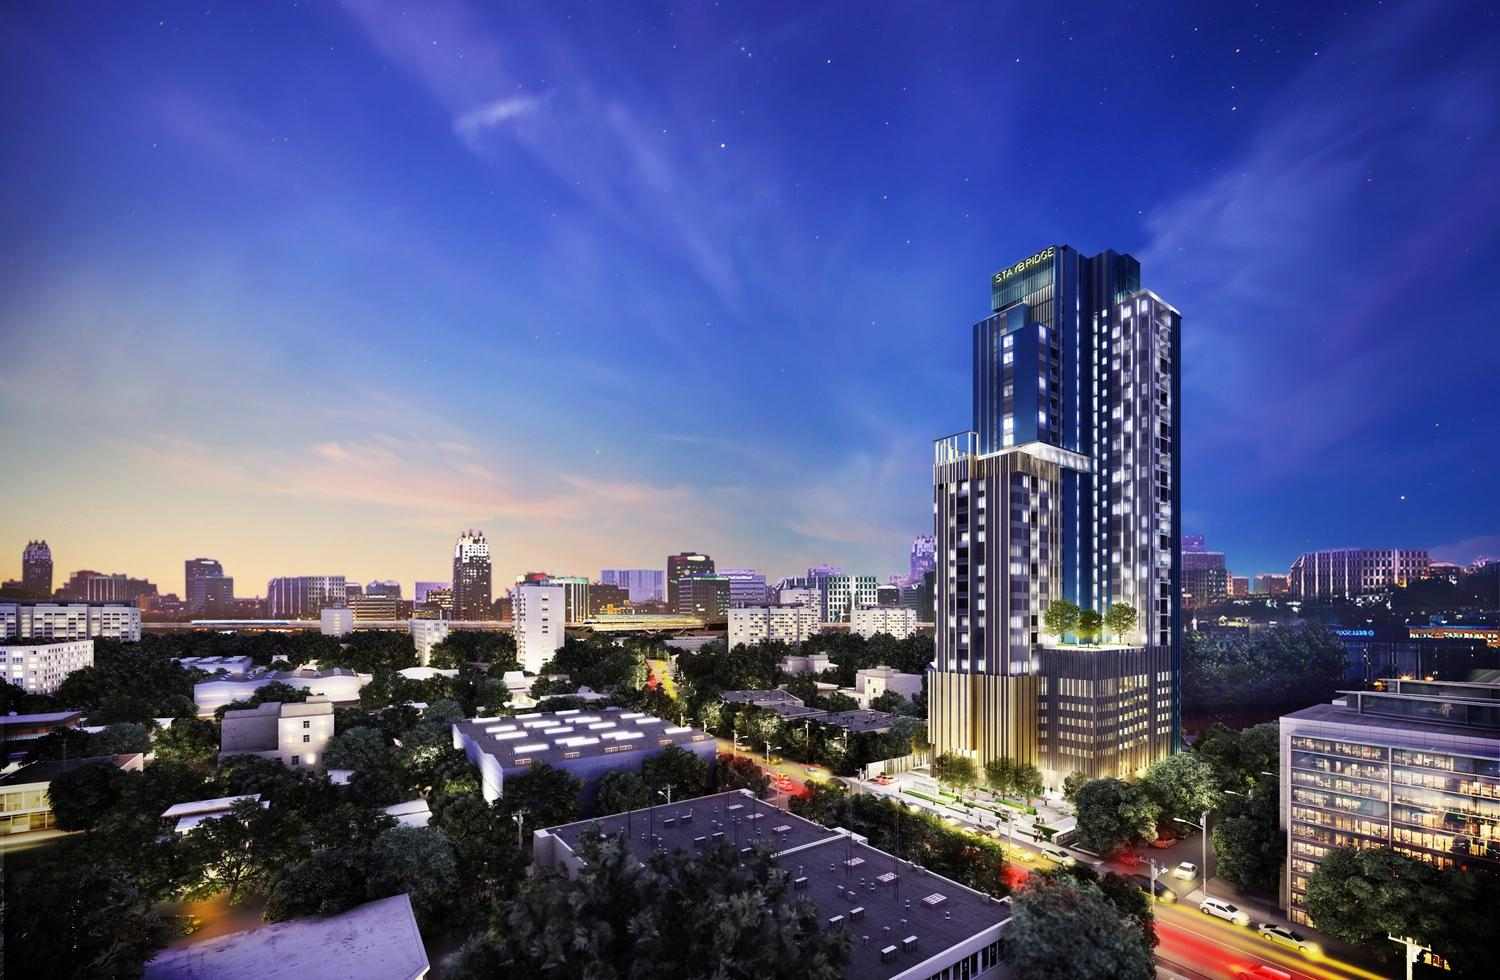 Staybridge Suites Bangkok Thonglor is among the developments catering to short- and long-stay clients.